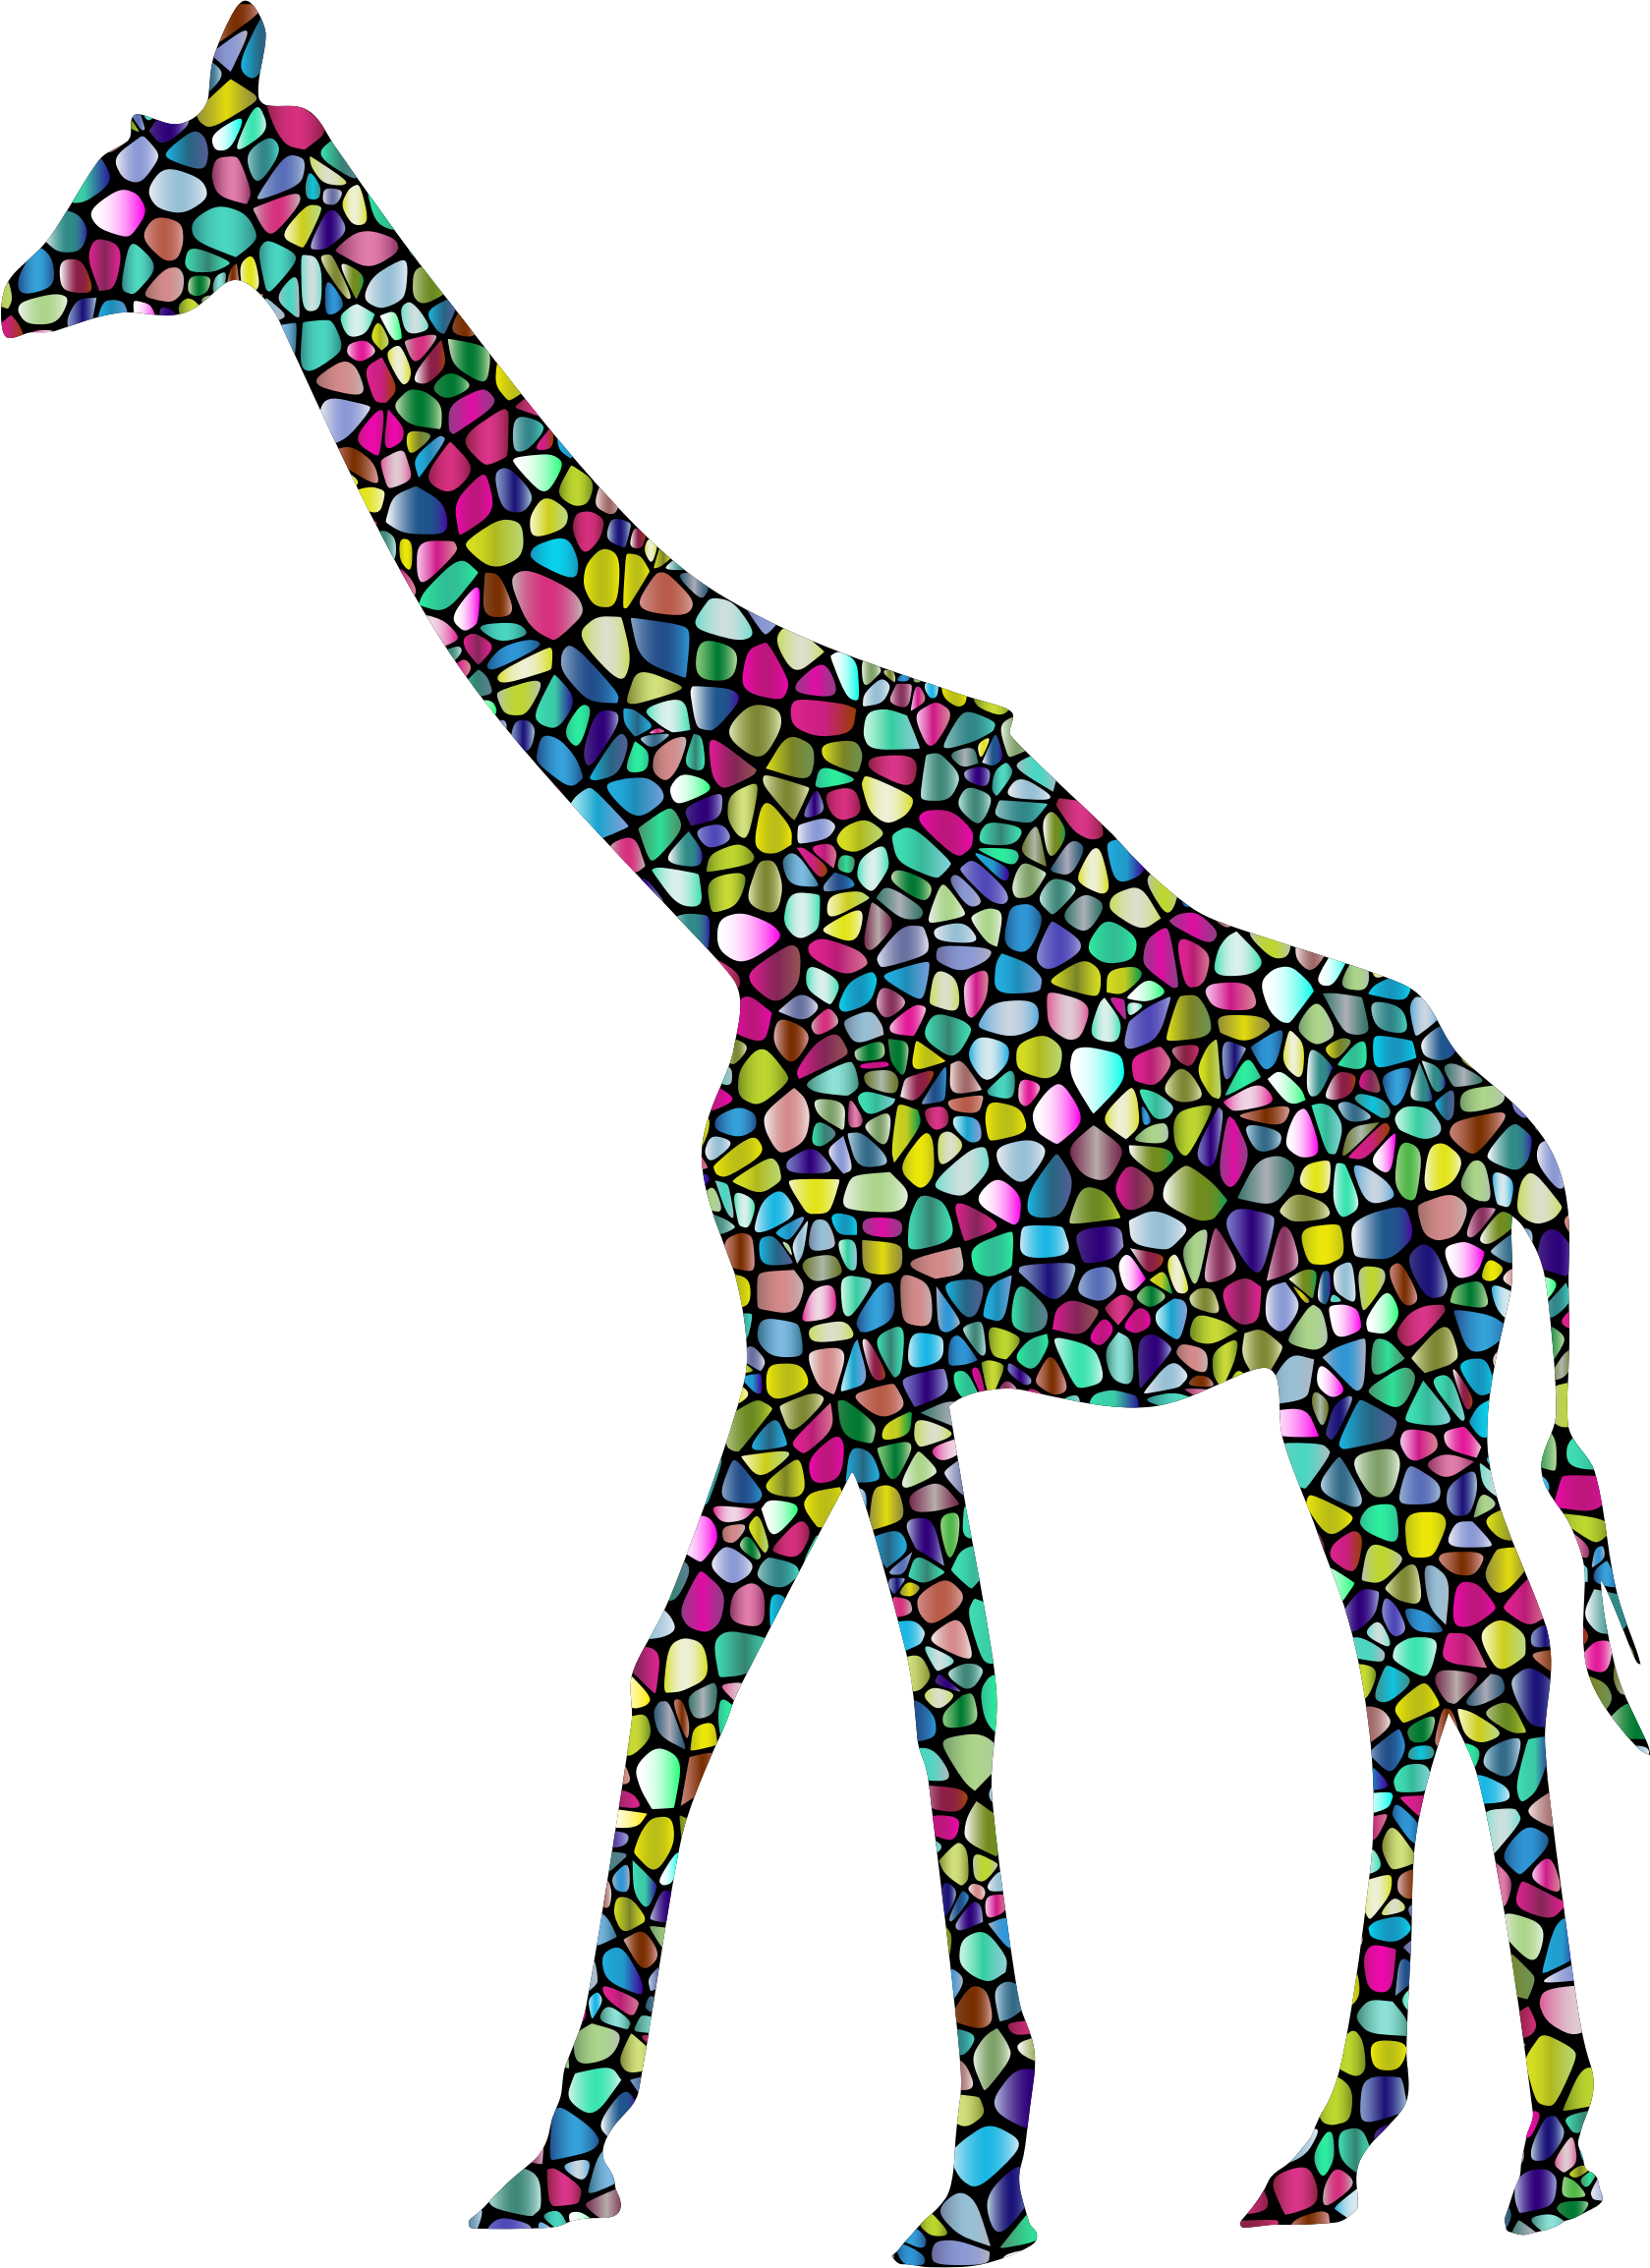 Polyprismatic Tiled Giraffe Landscape Silhouette Minus Landscape With Background by GDJ